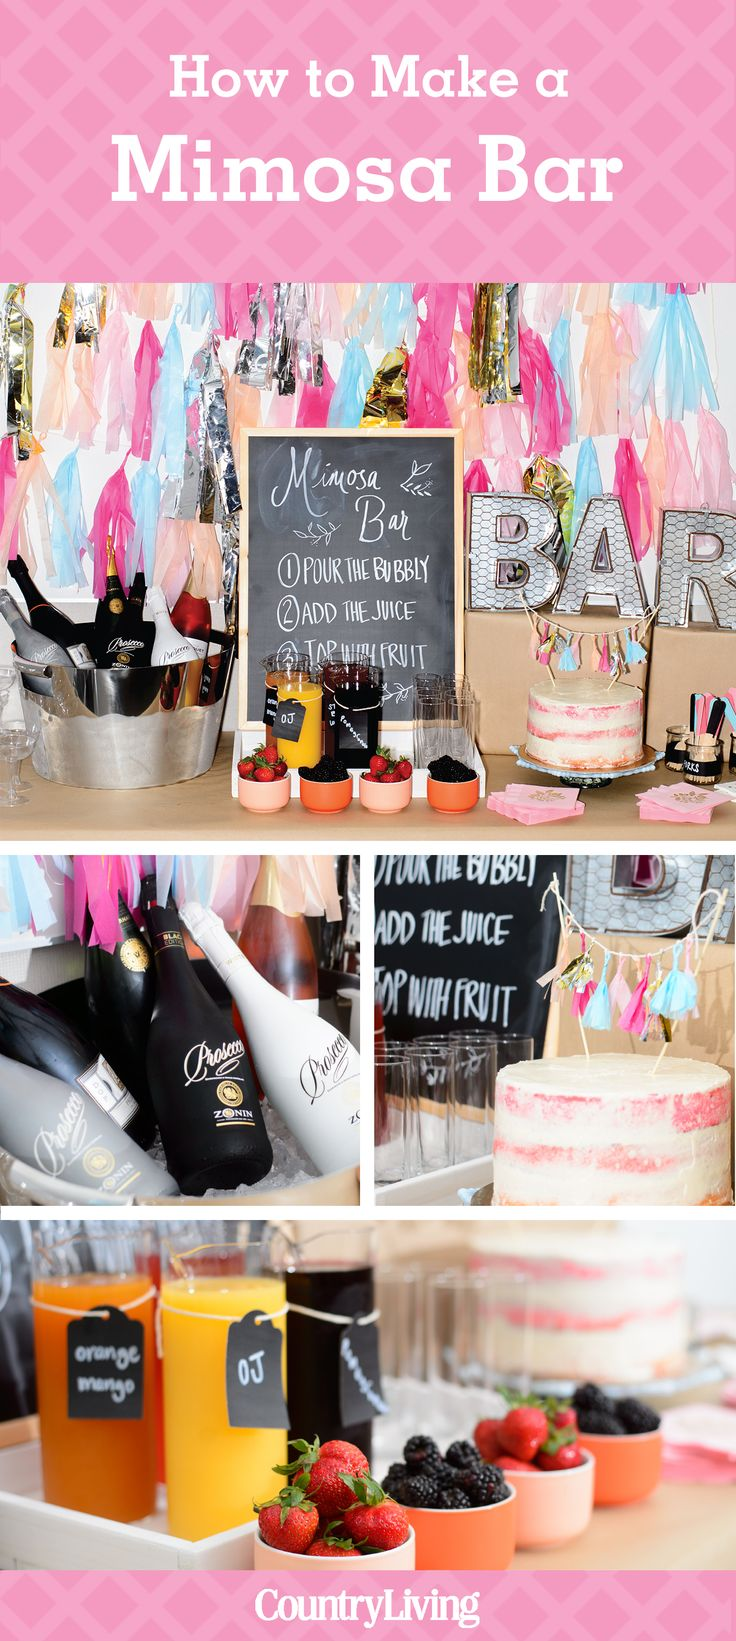 How to Make a Mimosa Bar - Bridal Shower Ideas